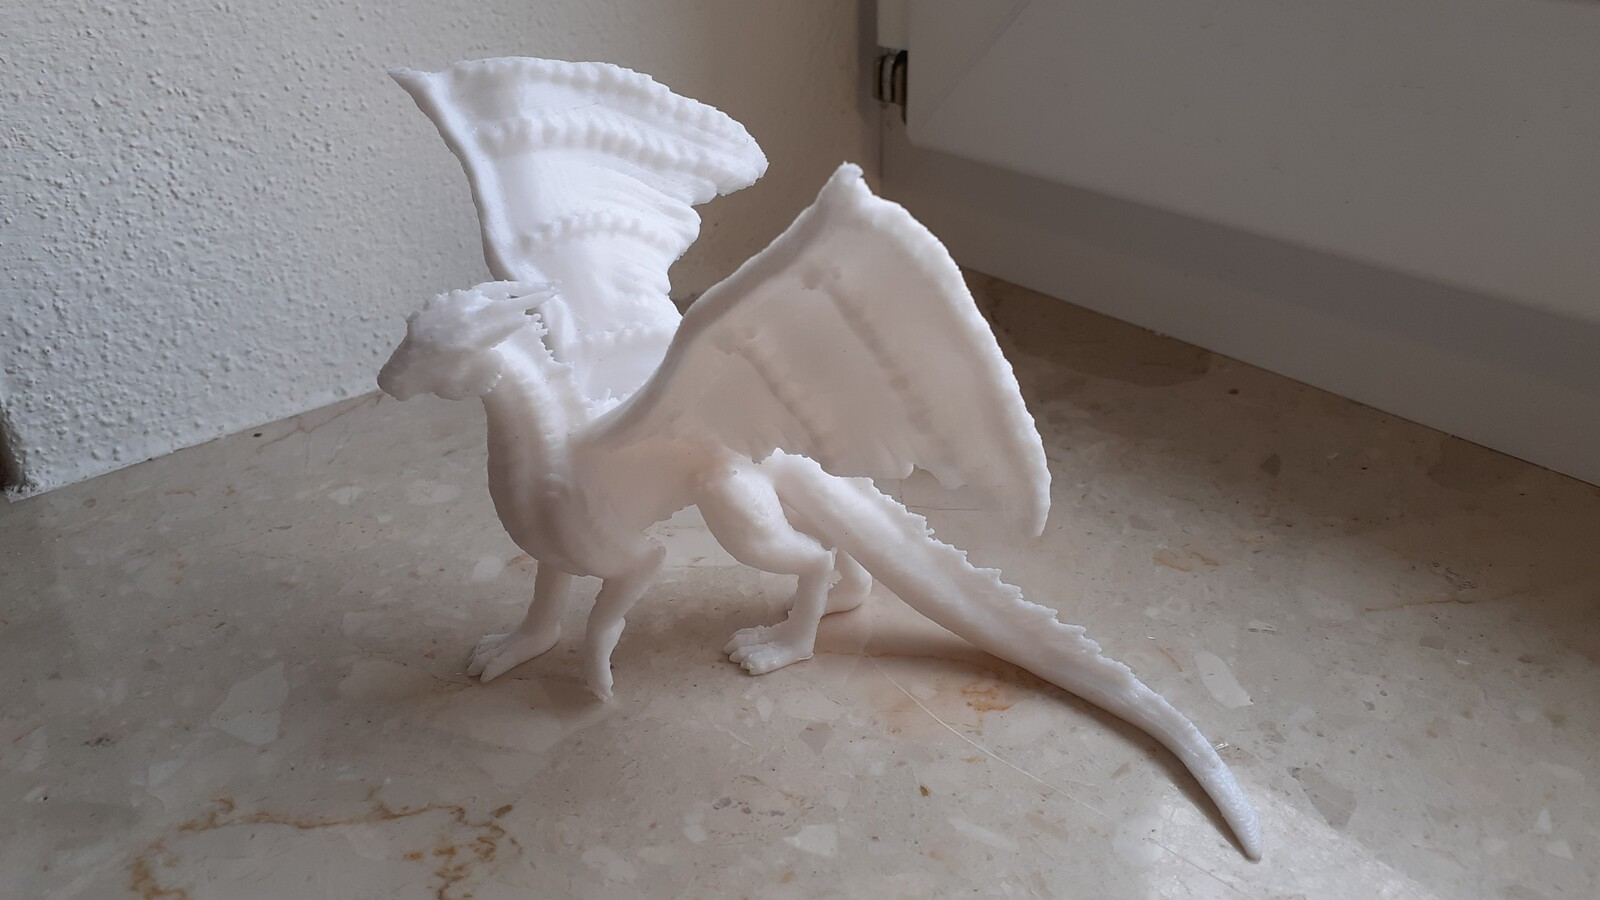 Silver Dragon by M3DM https://www.thingiverse.com/thing:4086899